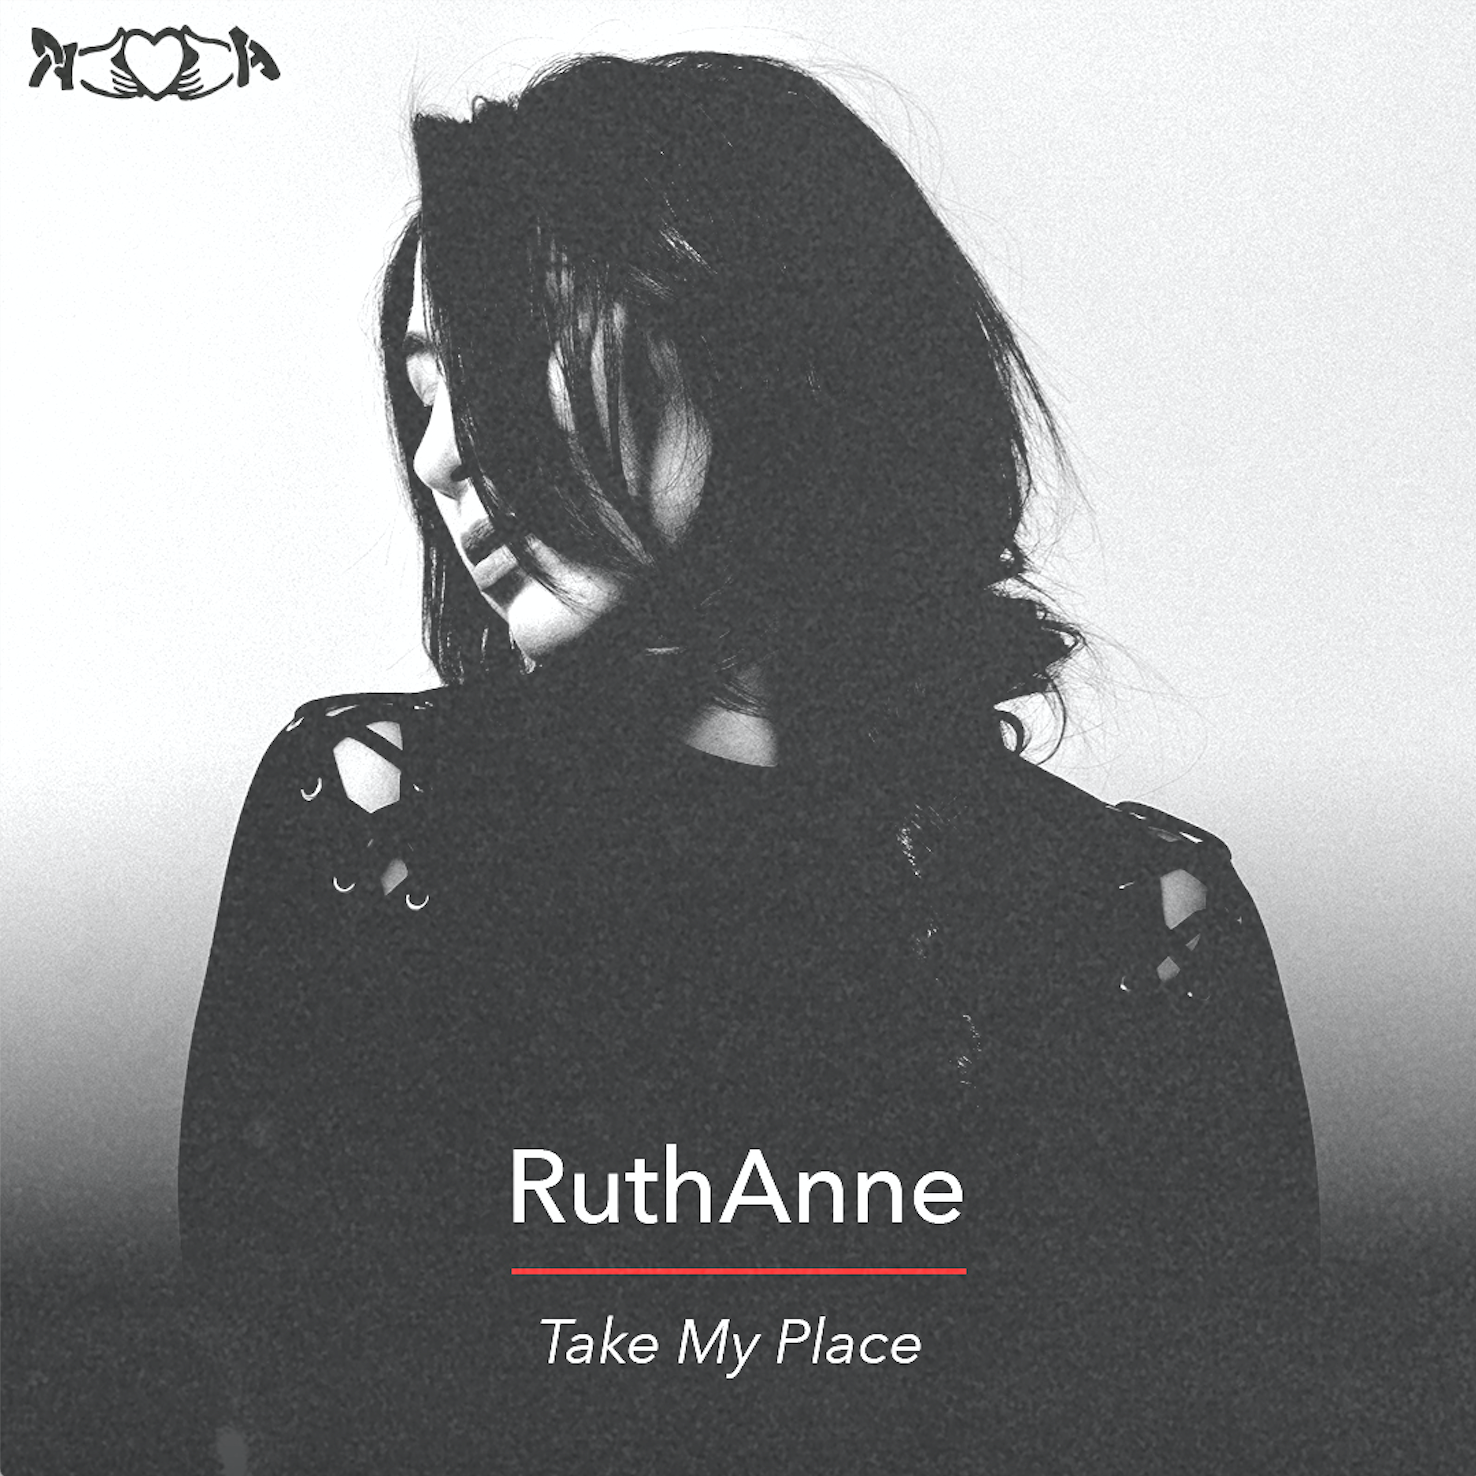 TakeMyPlace